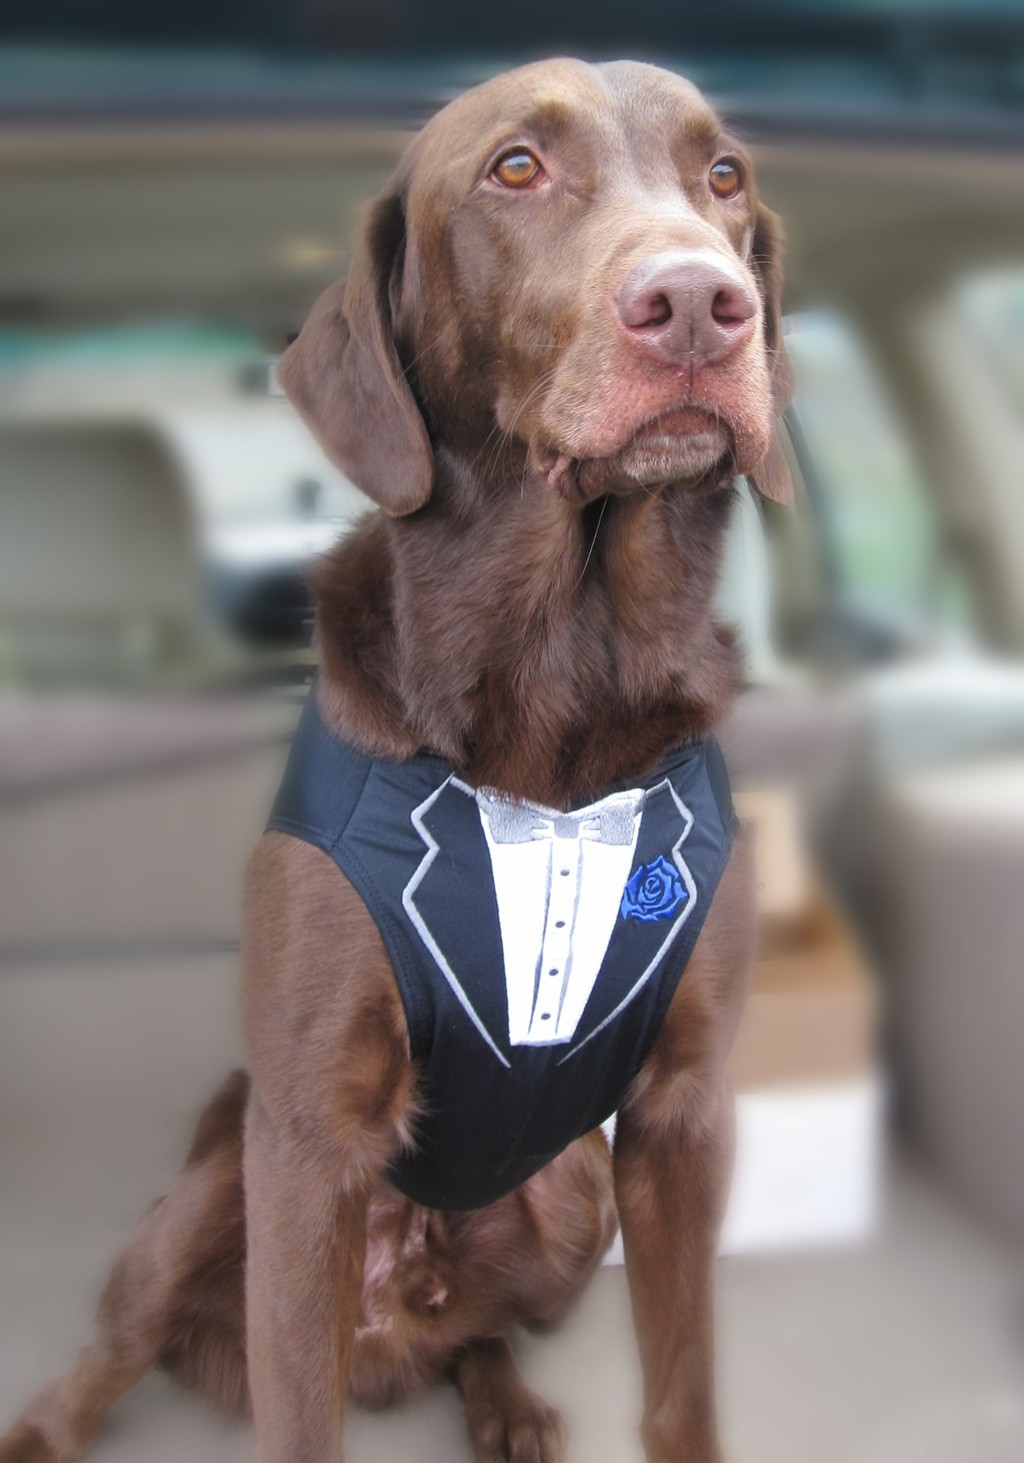 Adorable-wedding-attire-accessories-for-the-little-ones-in-the-wedding-dogs-best-man-tux-vest.full